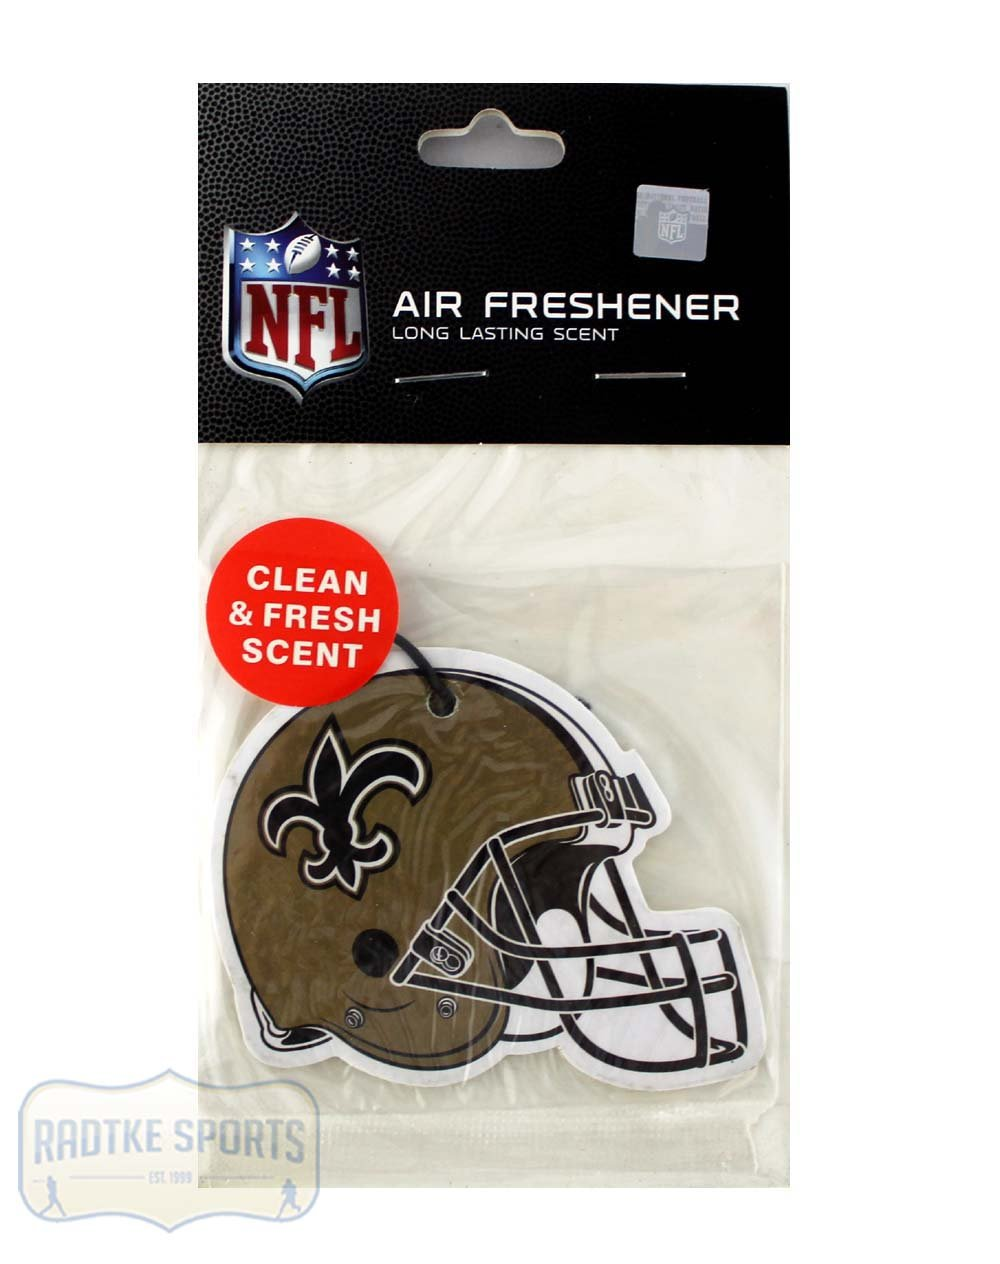 New Orleans Saints Officially Licensed Air Freshener Radtke Sports